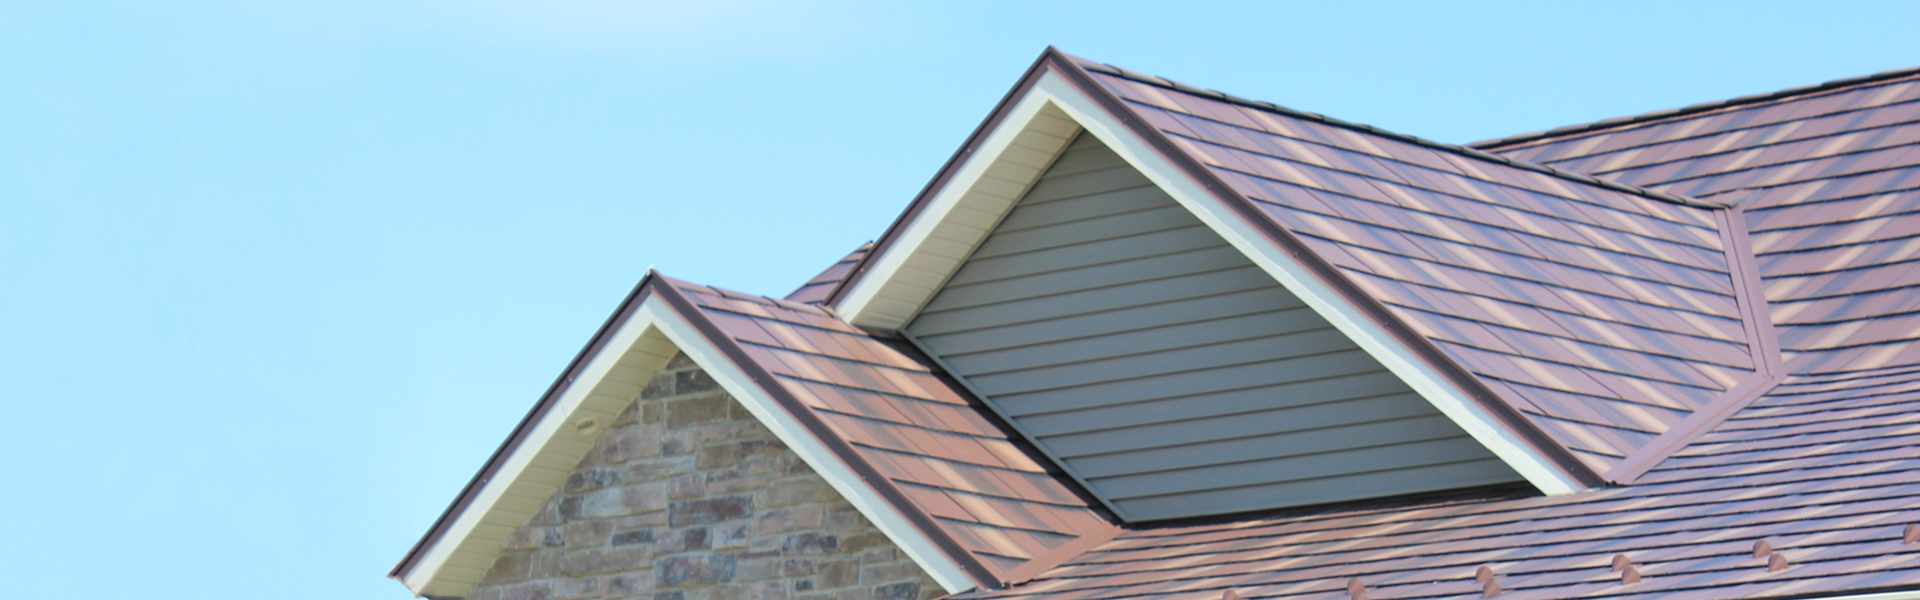 altitude-roofing-siding-windows-steel-roofing-services-wi_0006_roofing